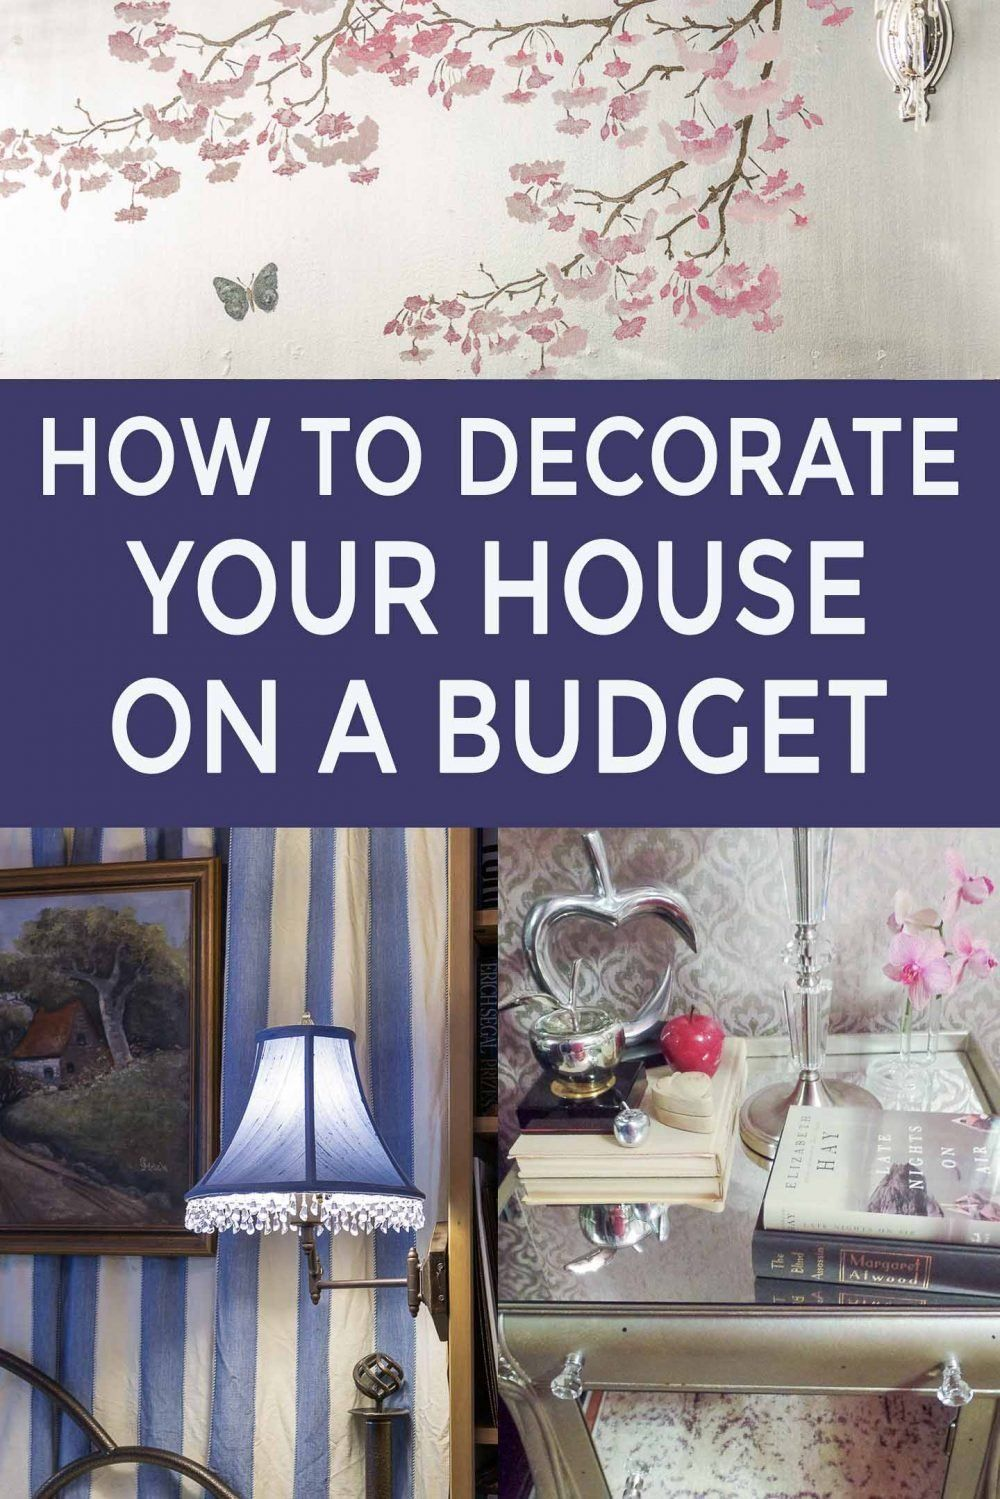 12 Ways To Decorate Your Home On A Budget Interior Decorating Styles Decorating Your Home Decorating On A Budget